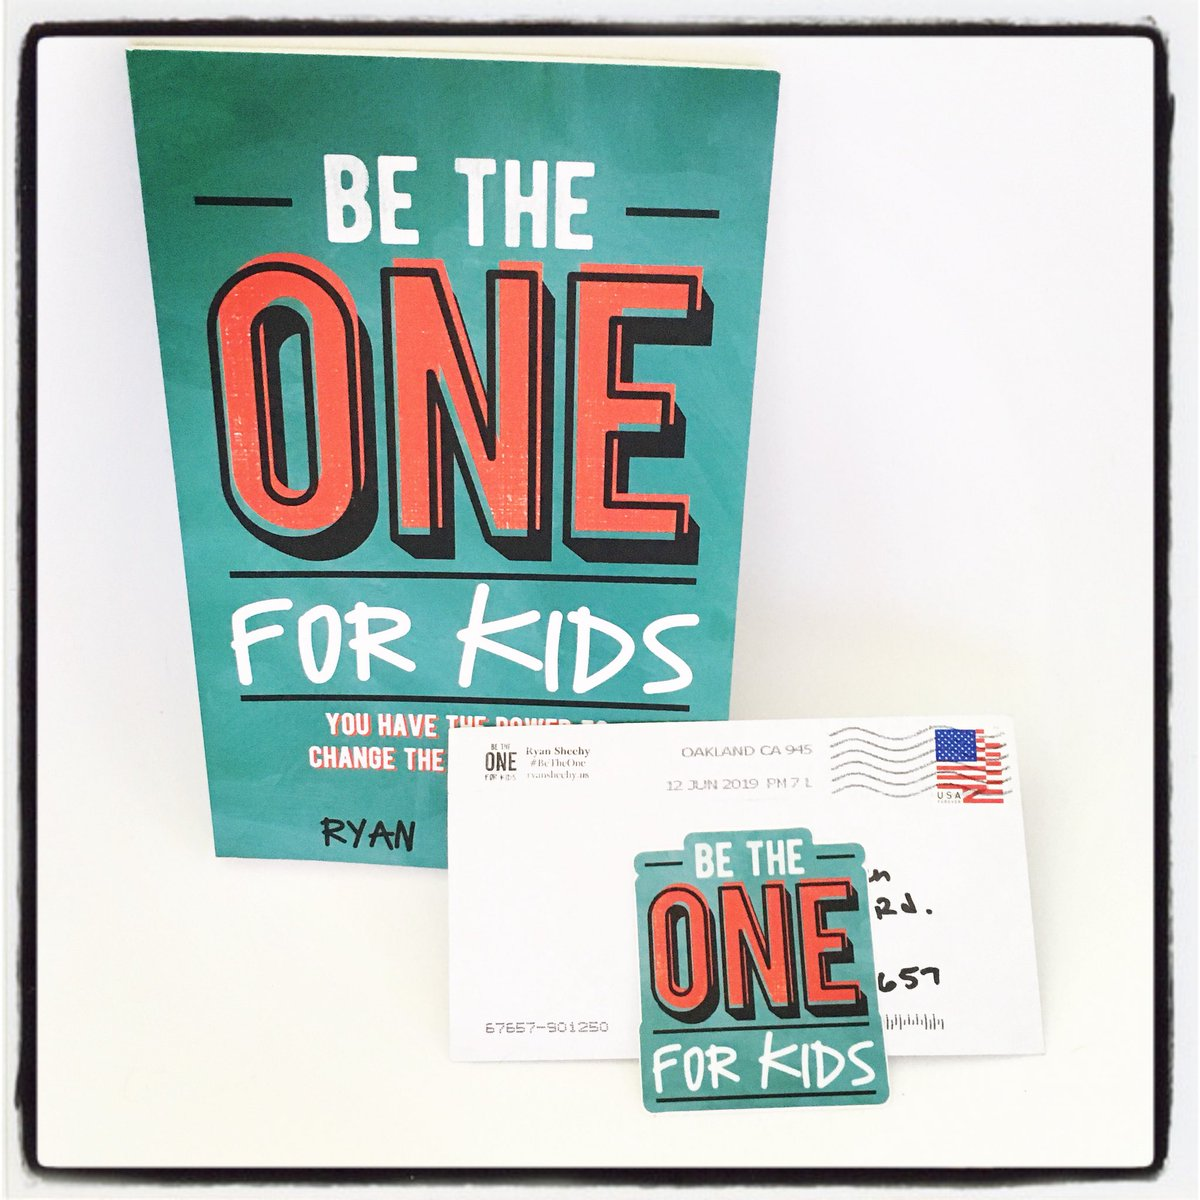 Excited to start #BeTheOne today! Thanks for the sticker, @sheehyrw 😊